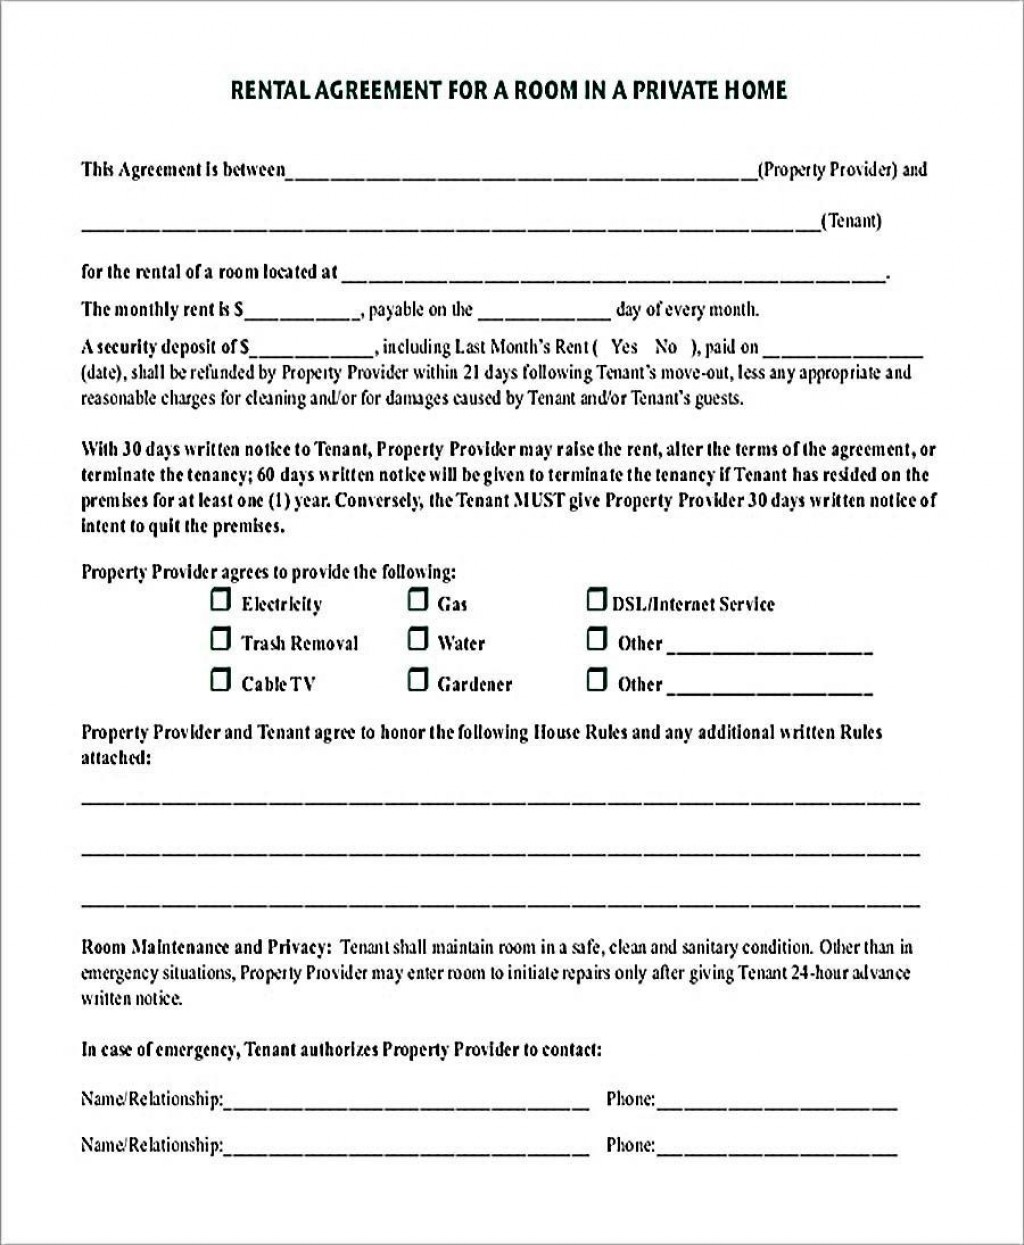 002 Impressive Rent Lease Agreement Template Picture  Tenancy Landlord Form Bc House Rental PdfLarge